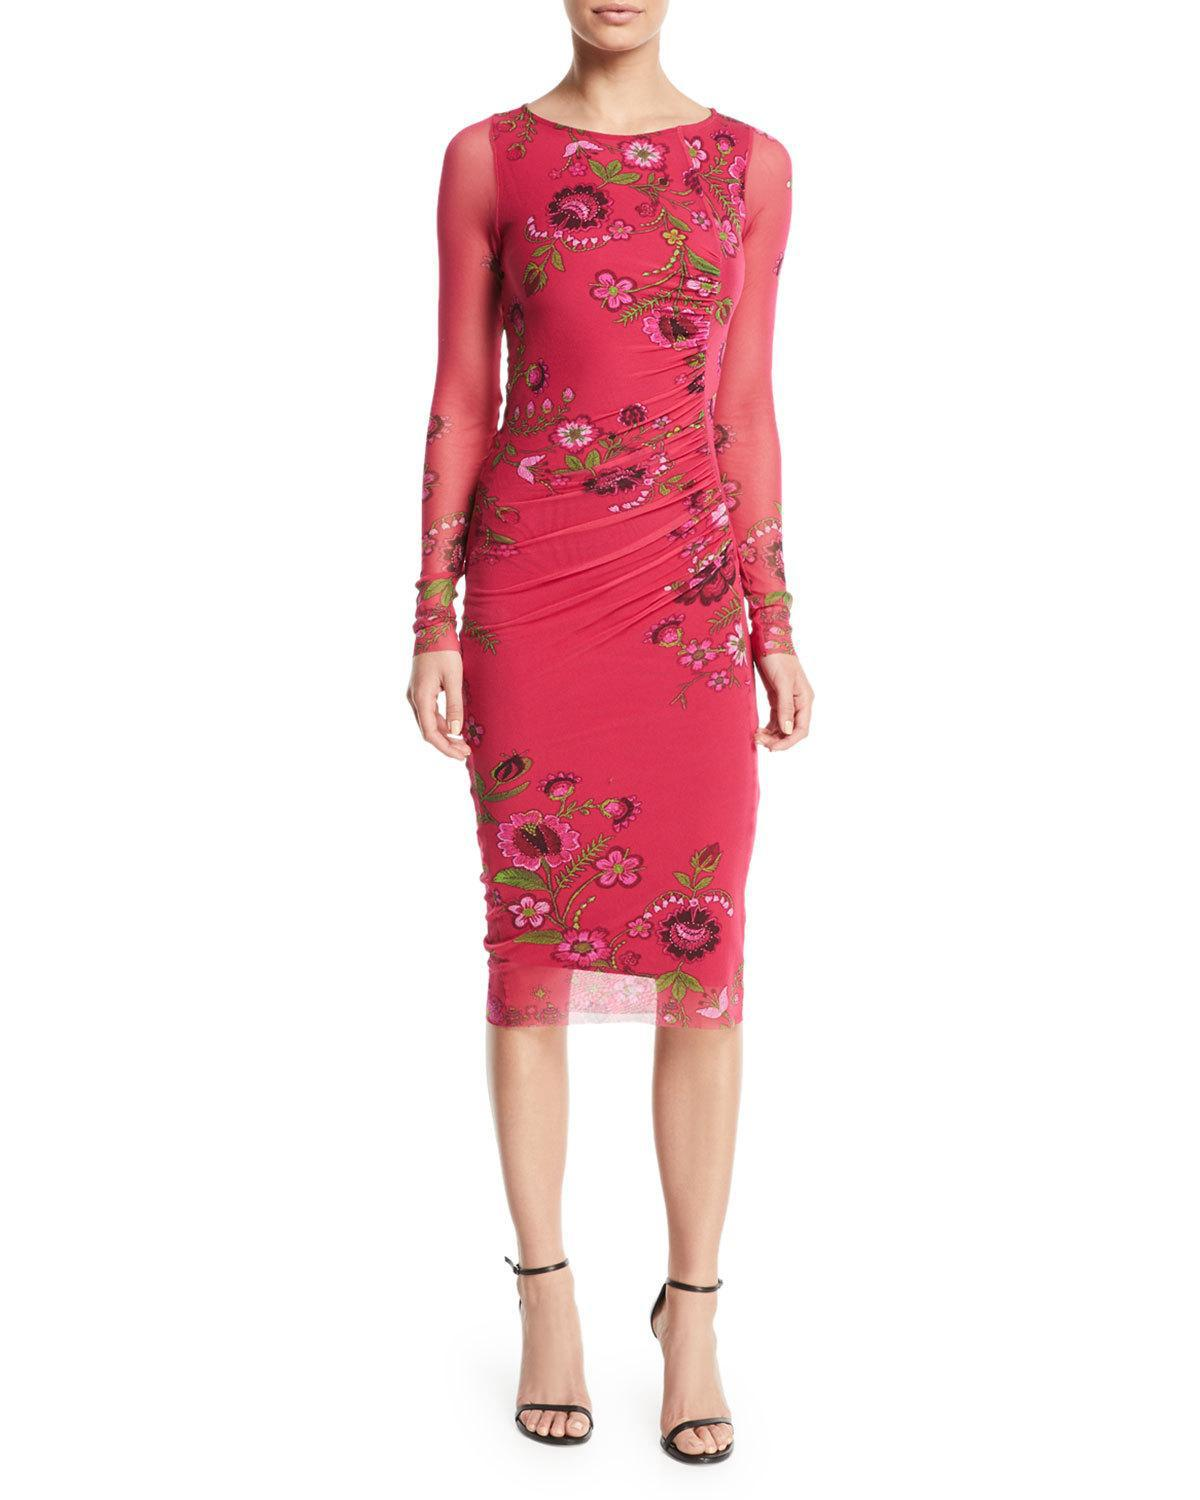 Lyst - Fuzzi Petunia Long-sleeve Side-shirred Sheath Dress in Red